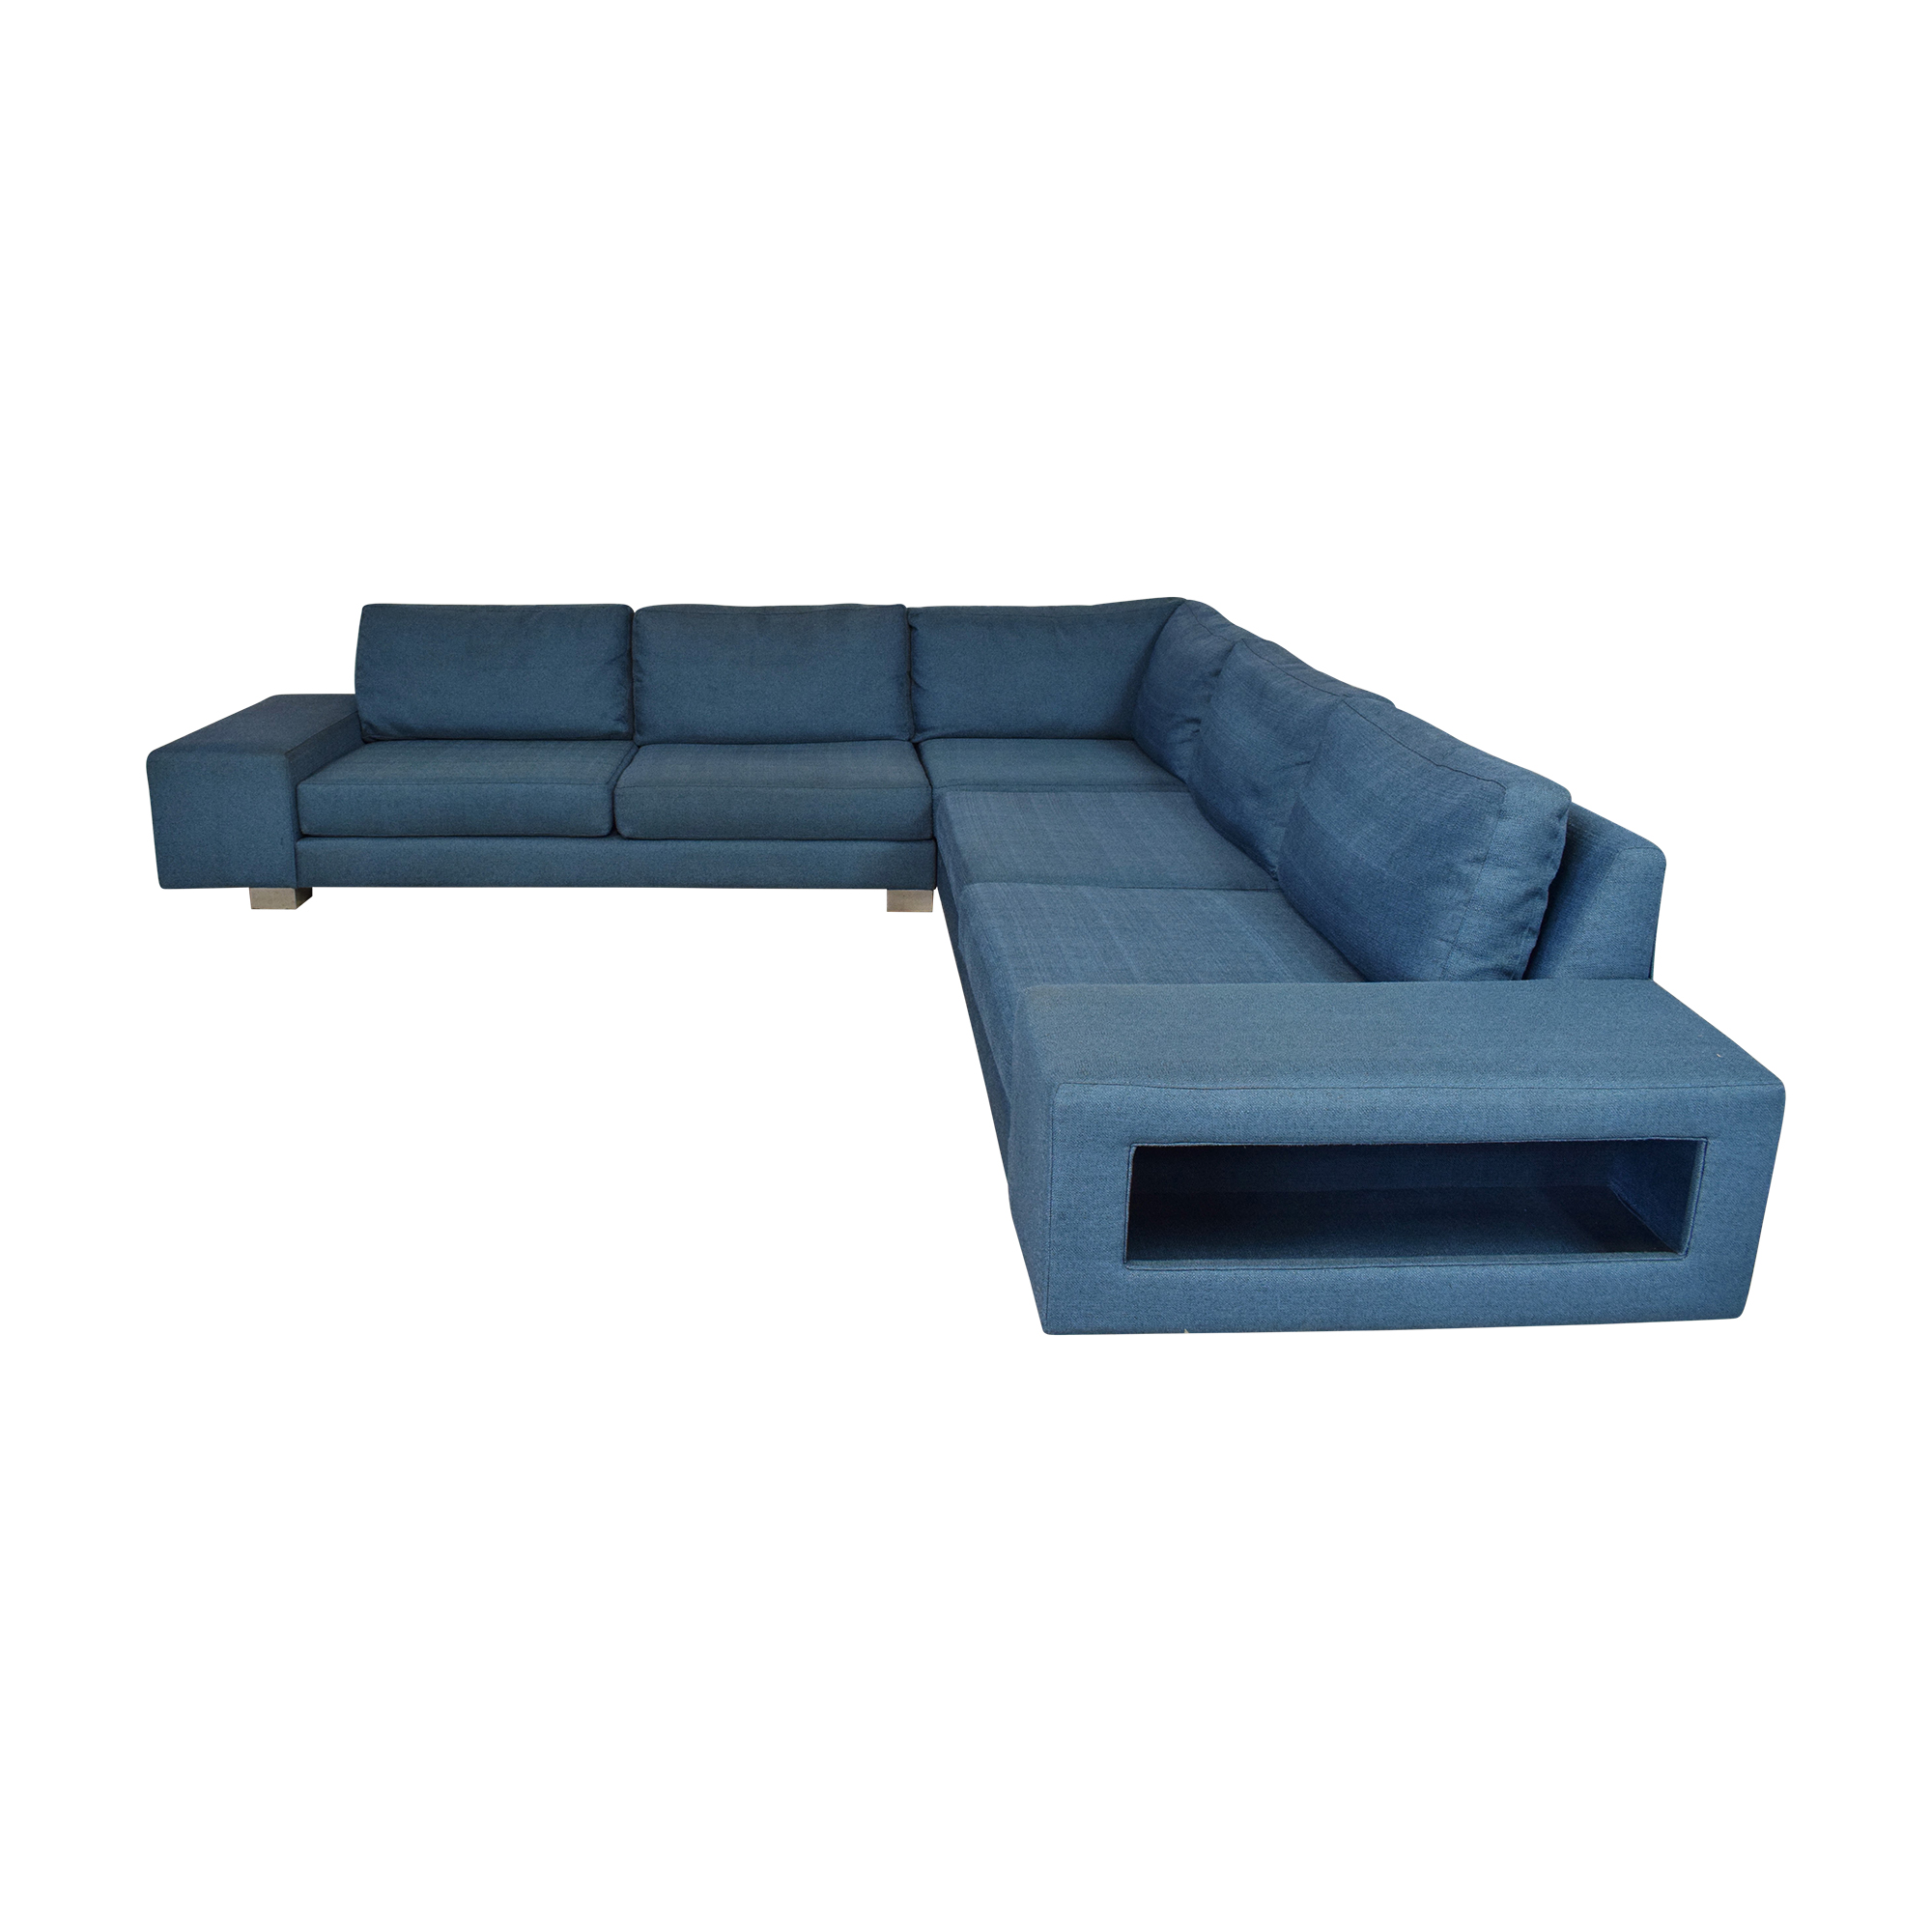 Viesso Viesso Strata Storage Sectional Sofa on sale